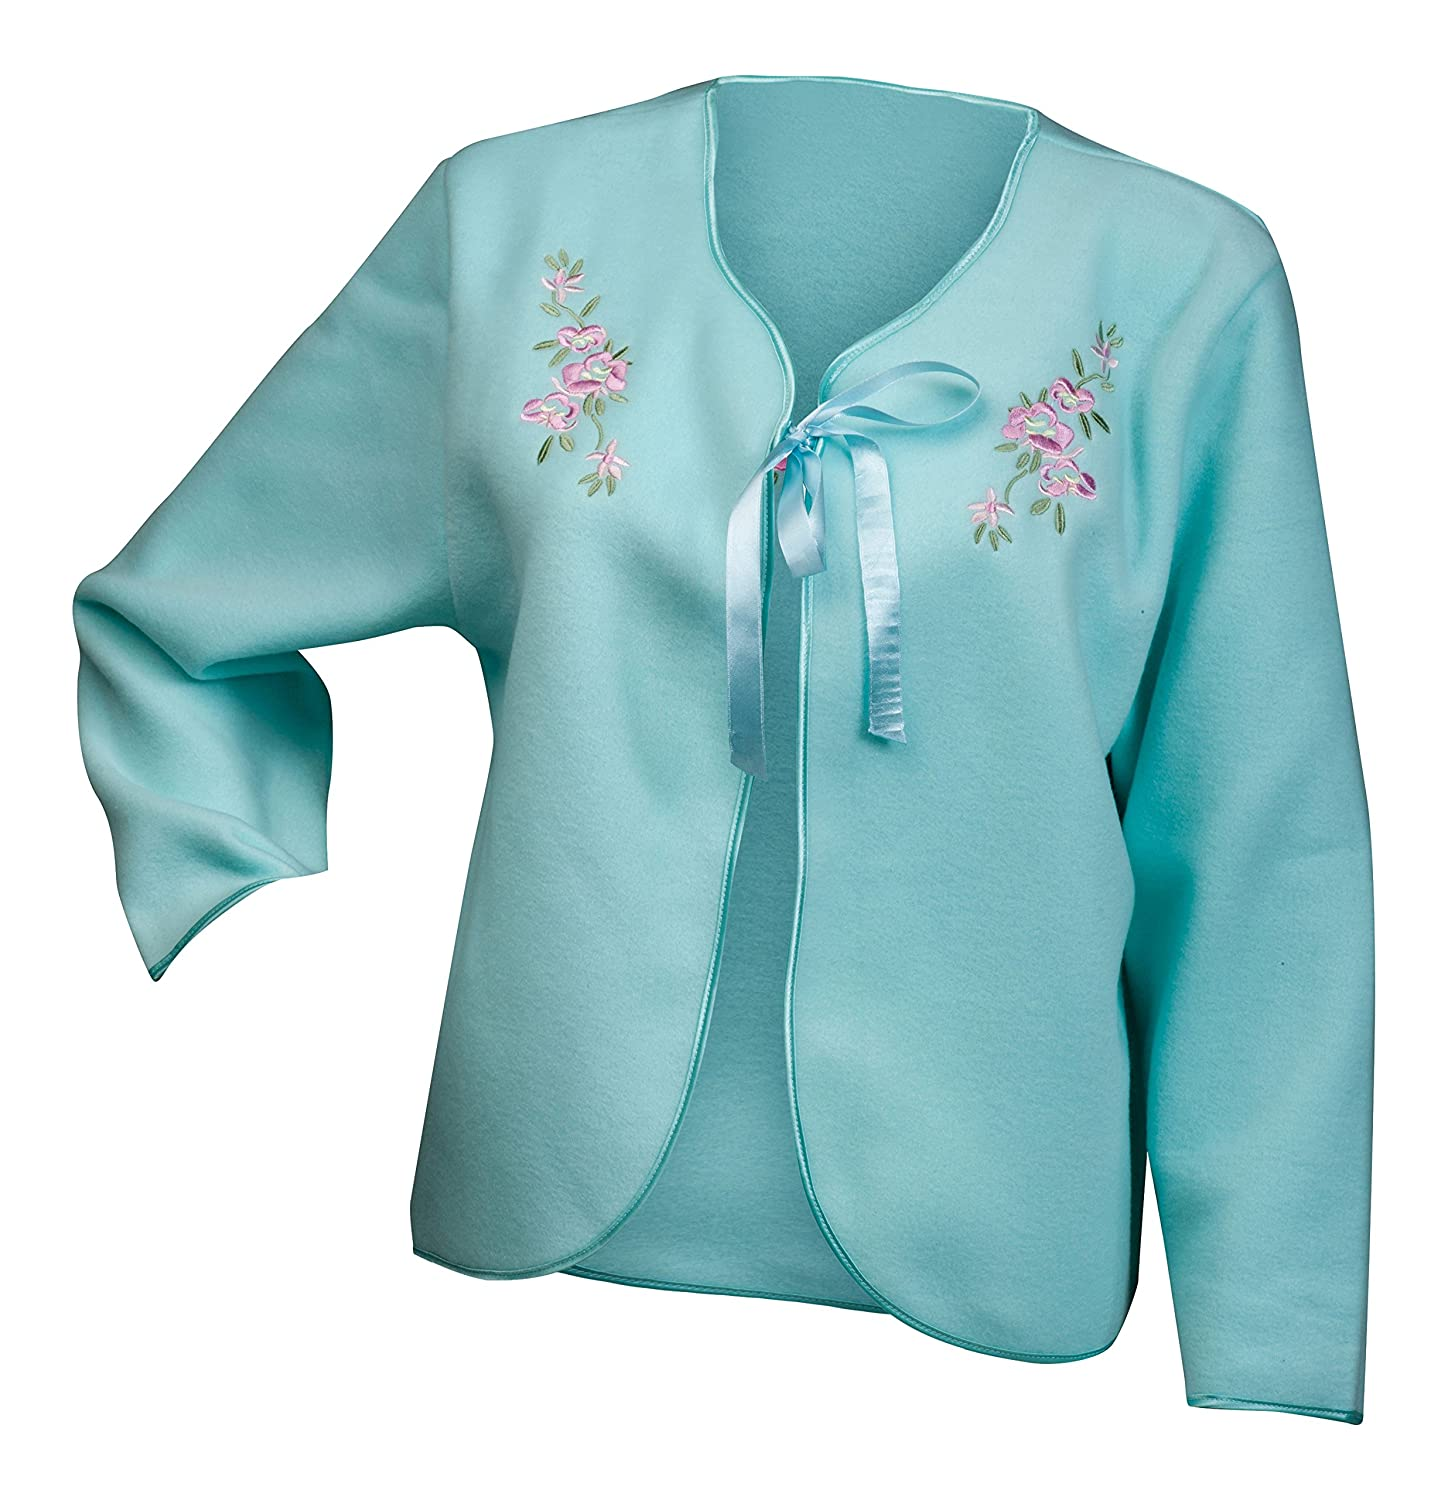 Slenderella Ladies Soft Polar Fleece Ribbon Tie Bed Jacket Floral Embroidered Detail House Coat